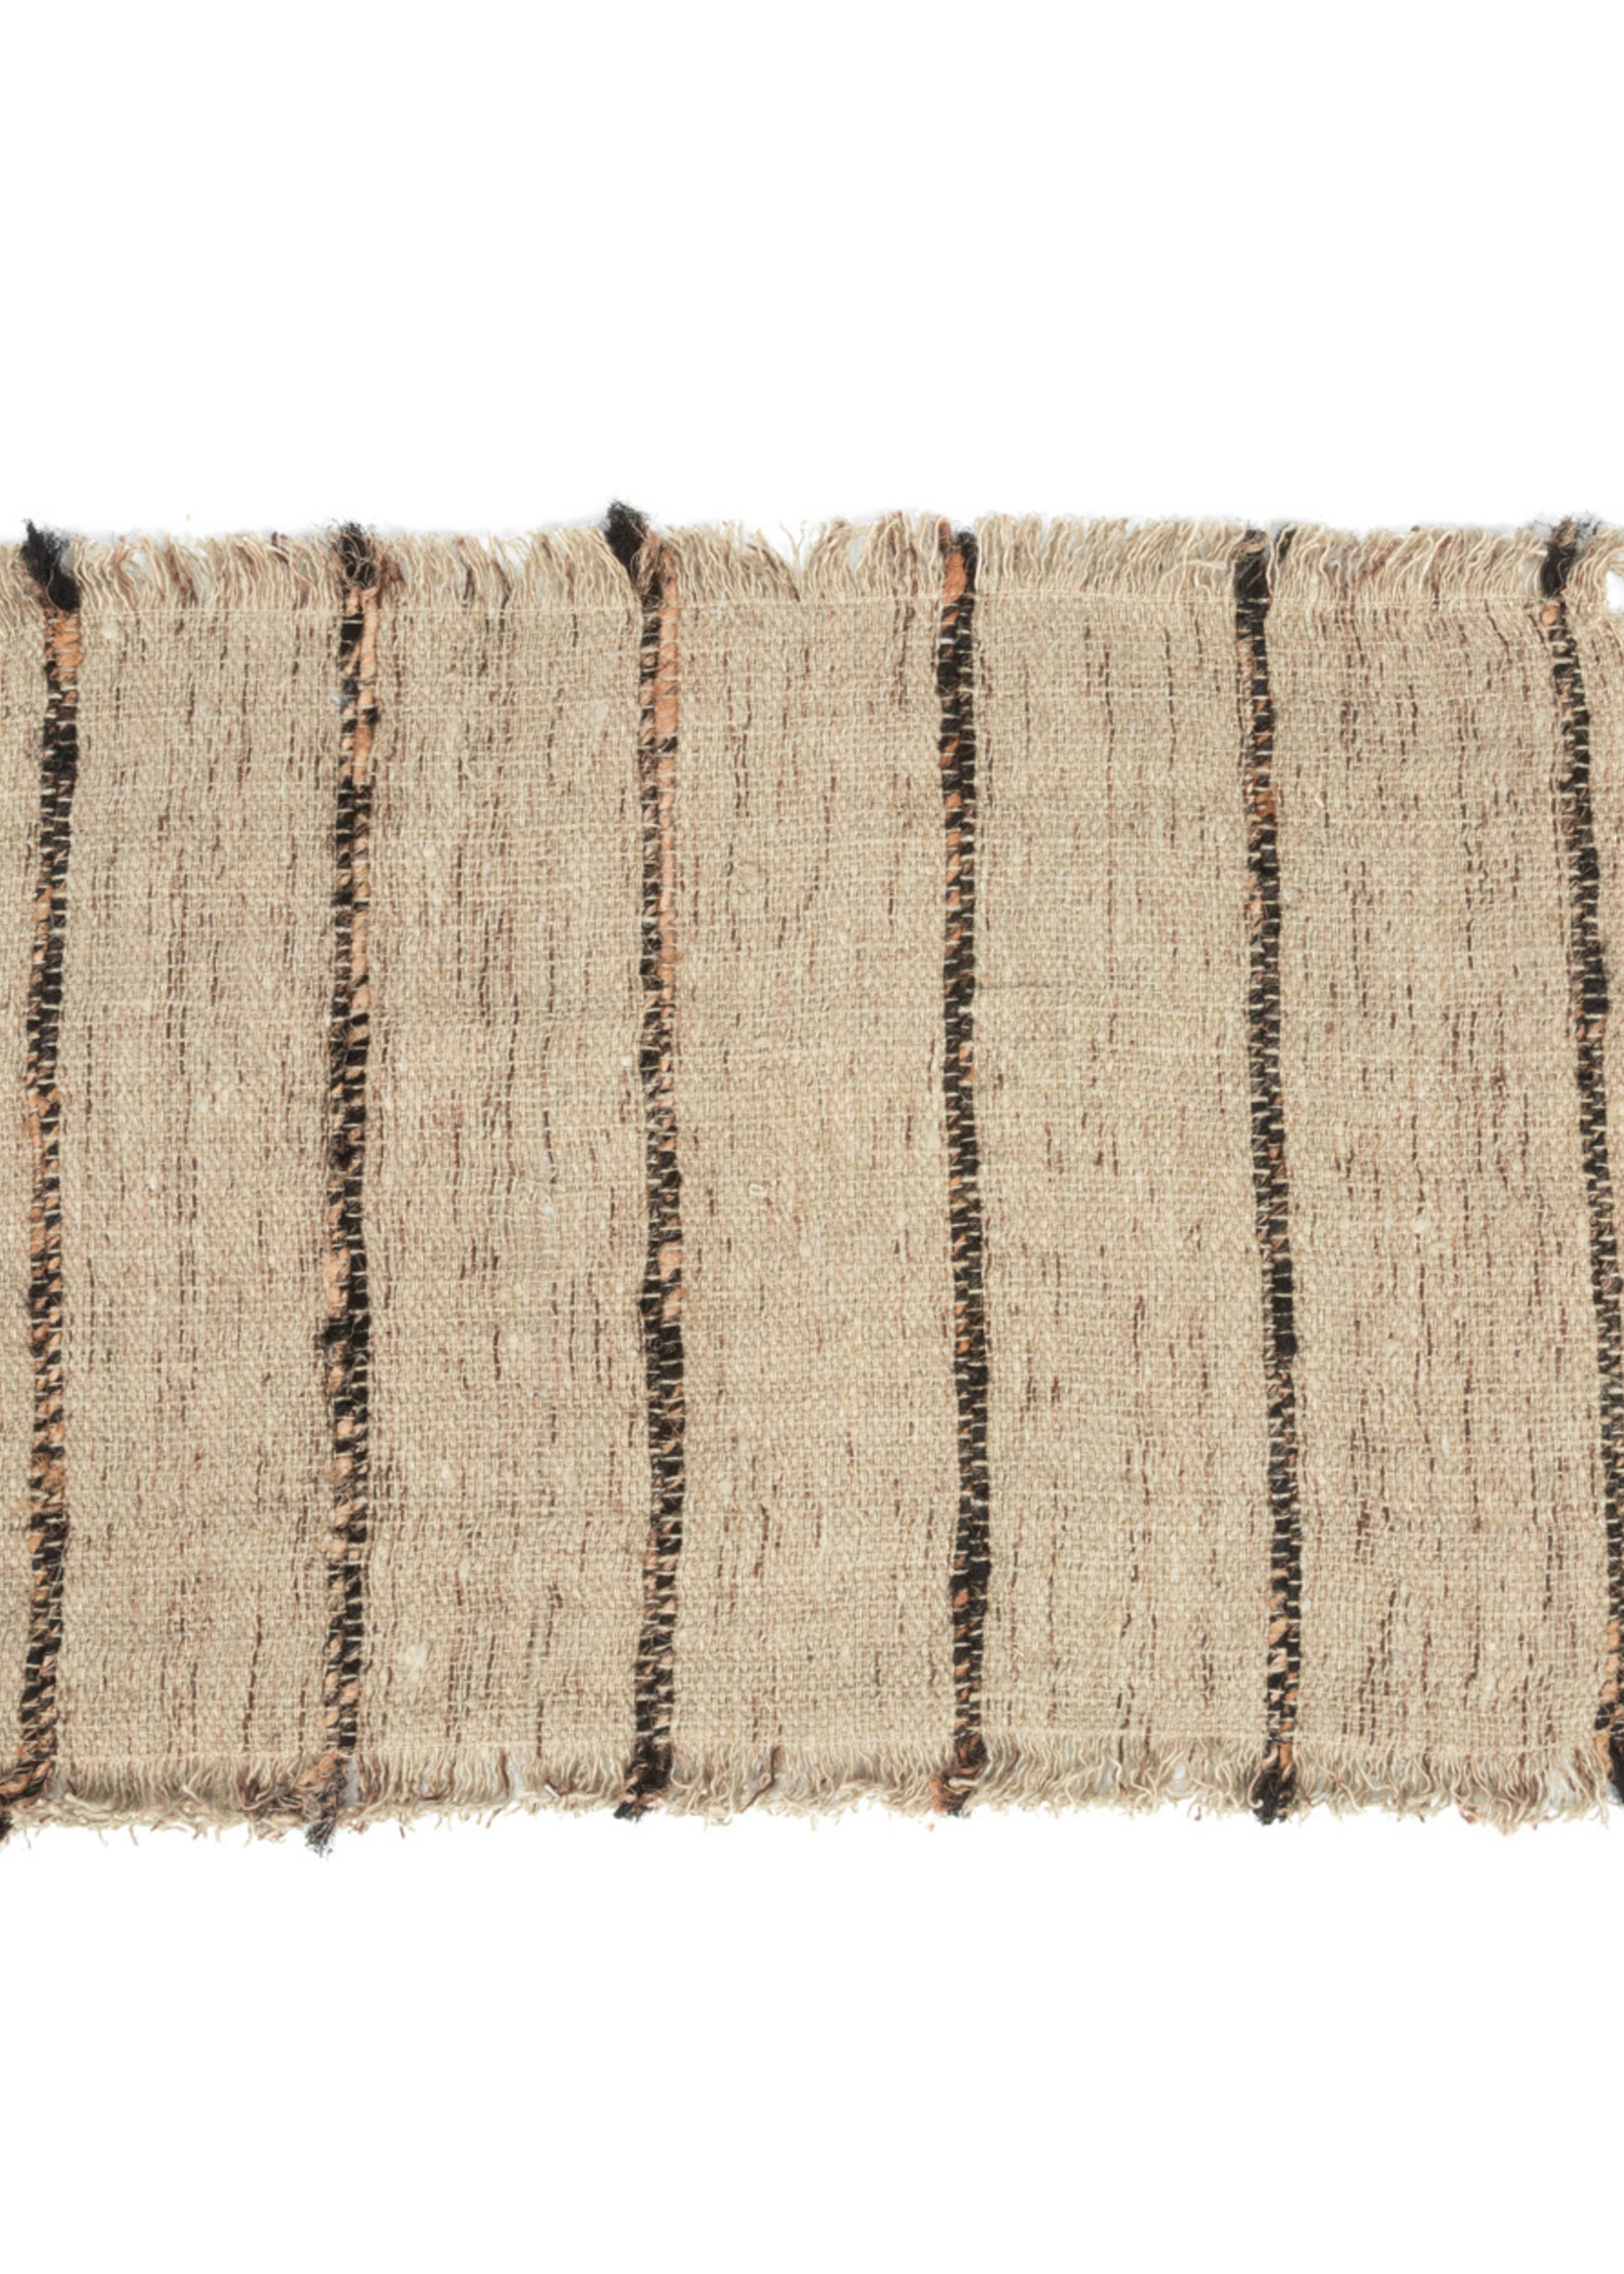 The Oh My Gee Placemat - Beige Black